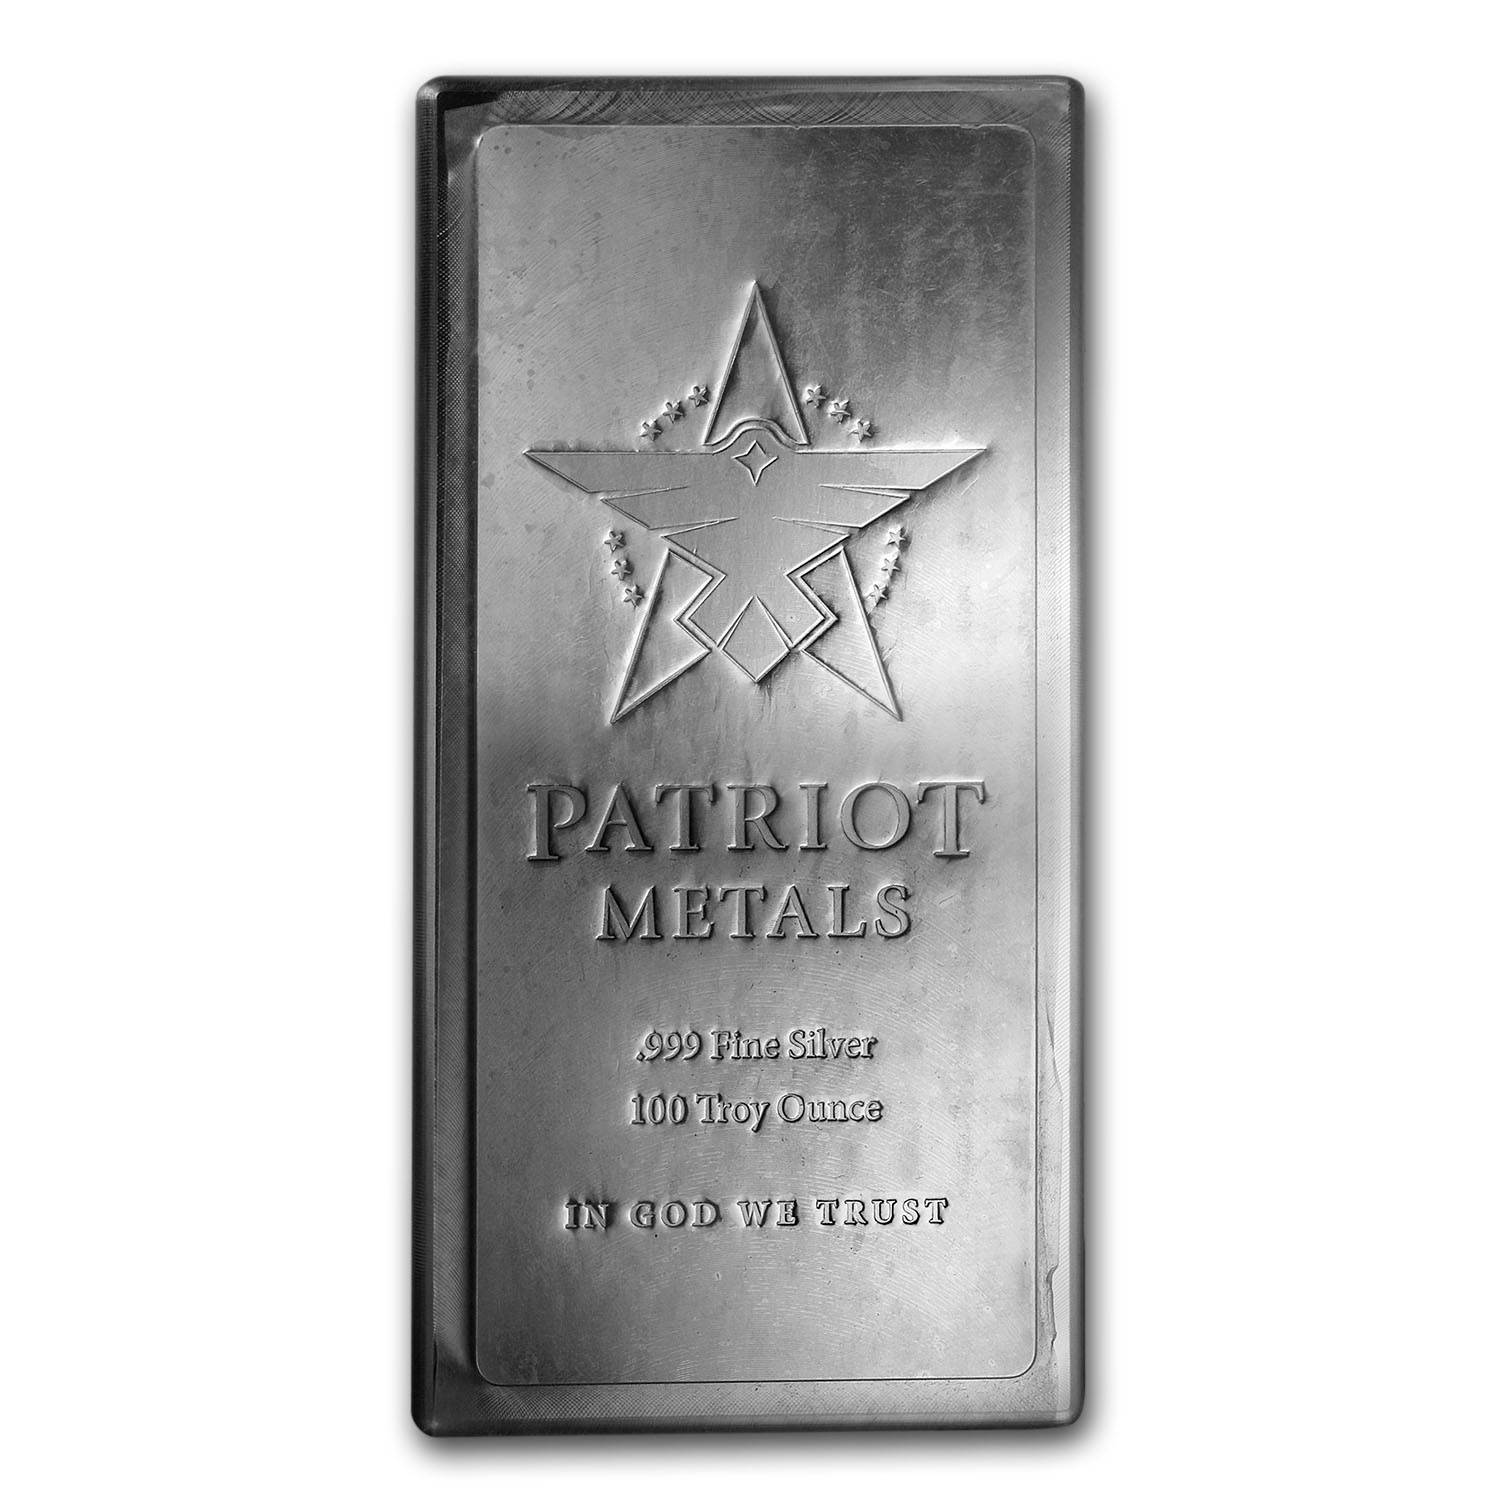 100 oz Silver Bar - Patriot Metals